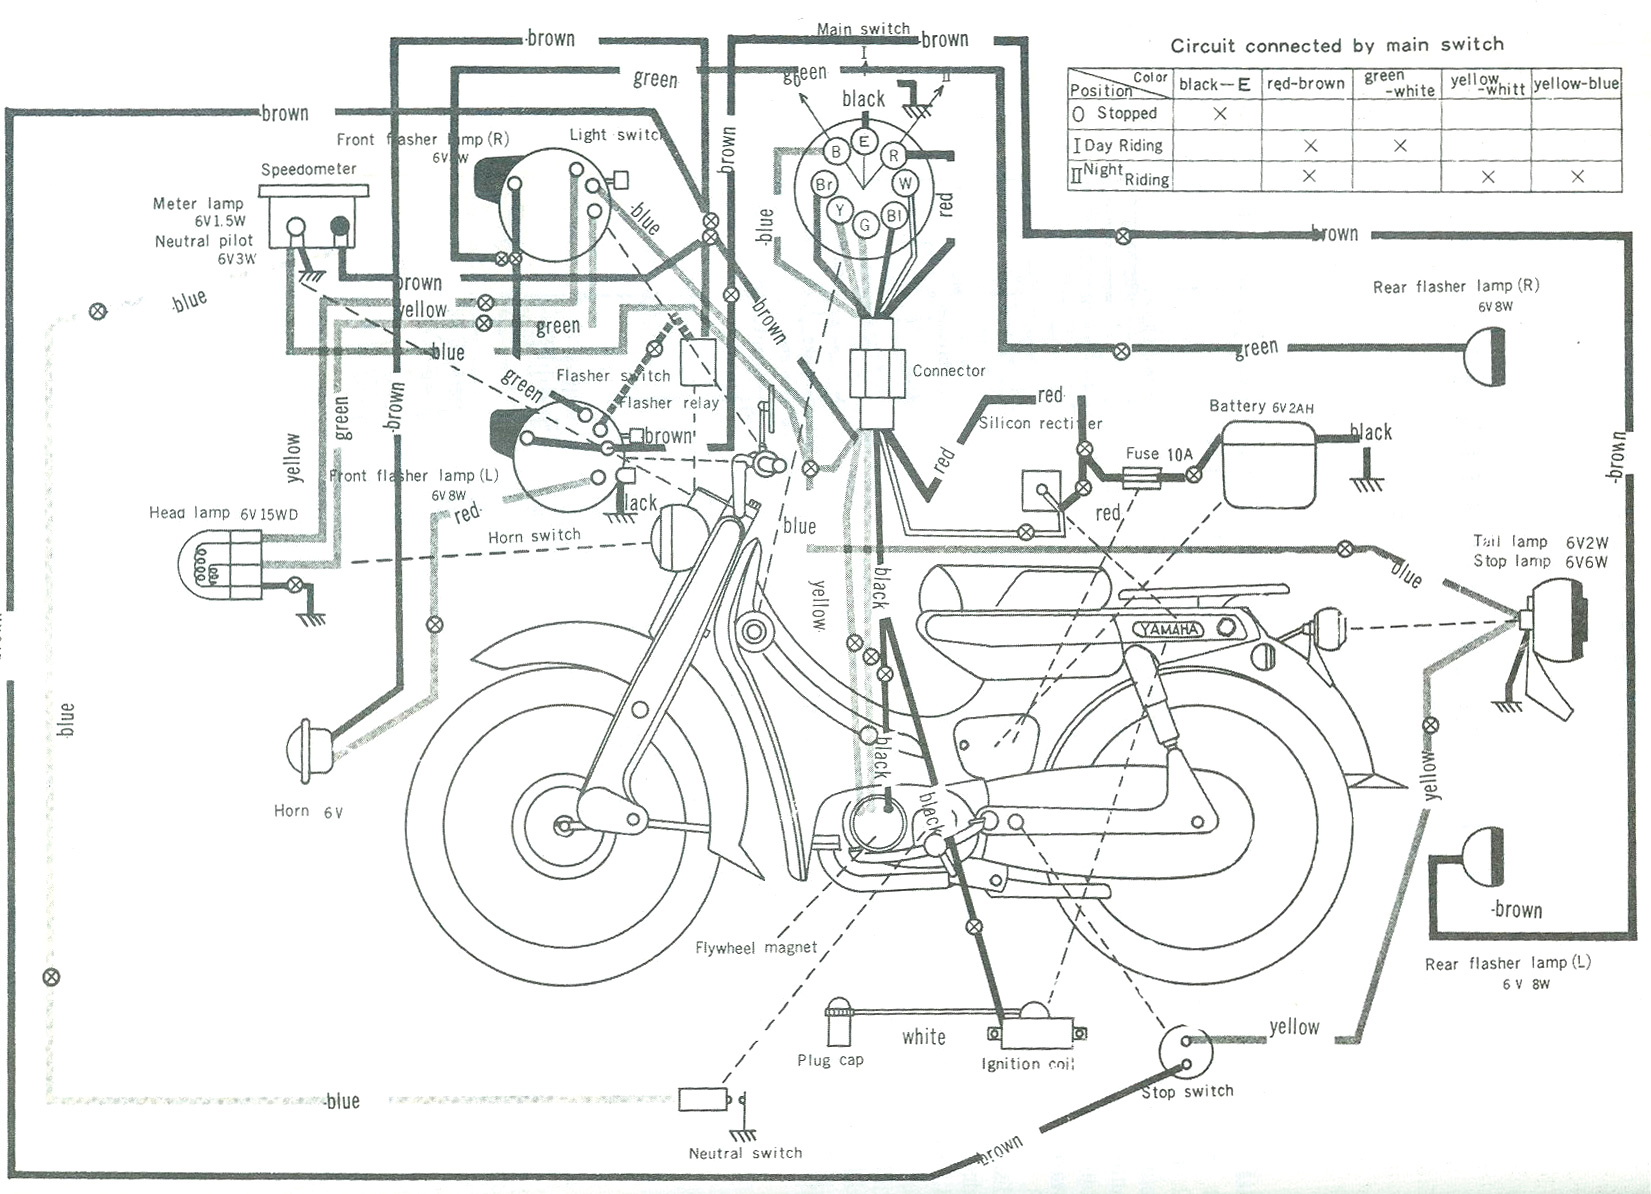 electrical wiring diagrams for motorcycles with U5e Wiring on Showthread additionally Cbr250 Wiring Diagram additionally L5t100 wiring as well Honda Cb125s Chilton Electrical Wiring Diagram in addition Basic Car Wiring Diagram Light.